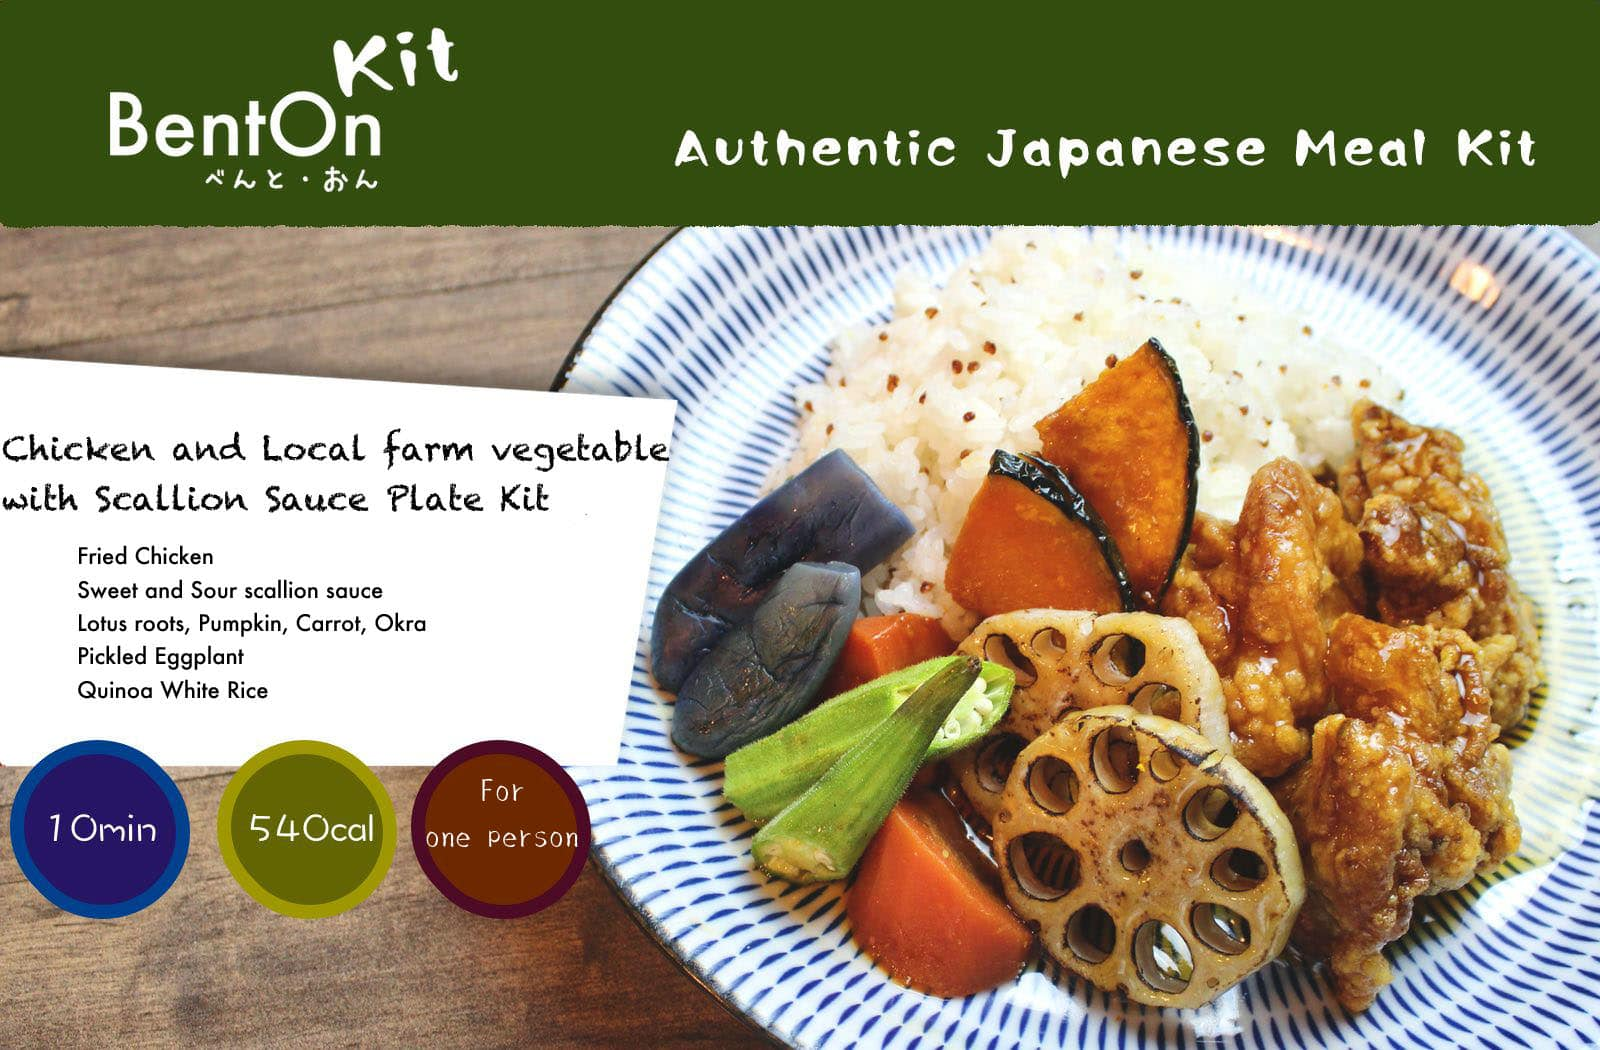 CHICKEN AND LOCAL FARM VEGETABLE WITH SCALLION SAUCE PLATE KIT